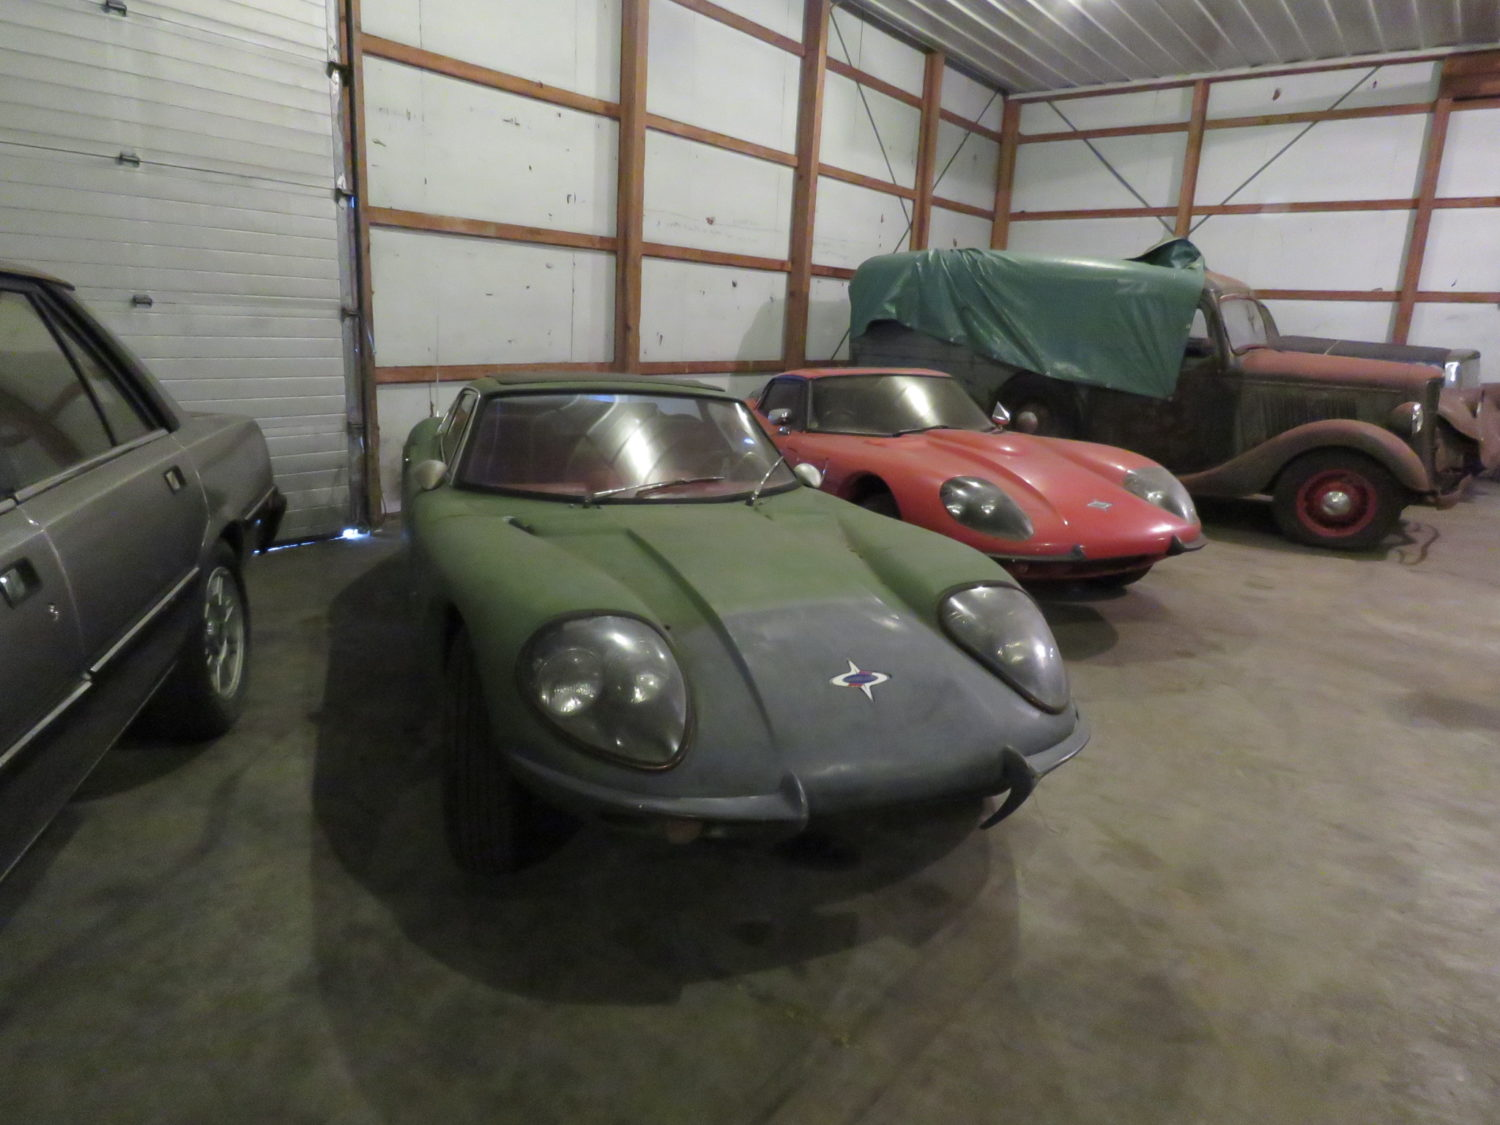 Amazing Vintage Motorcycles, Race Cars, Collector Cars & Parts! The JAB Collection - image 6